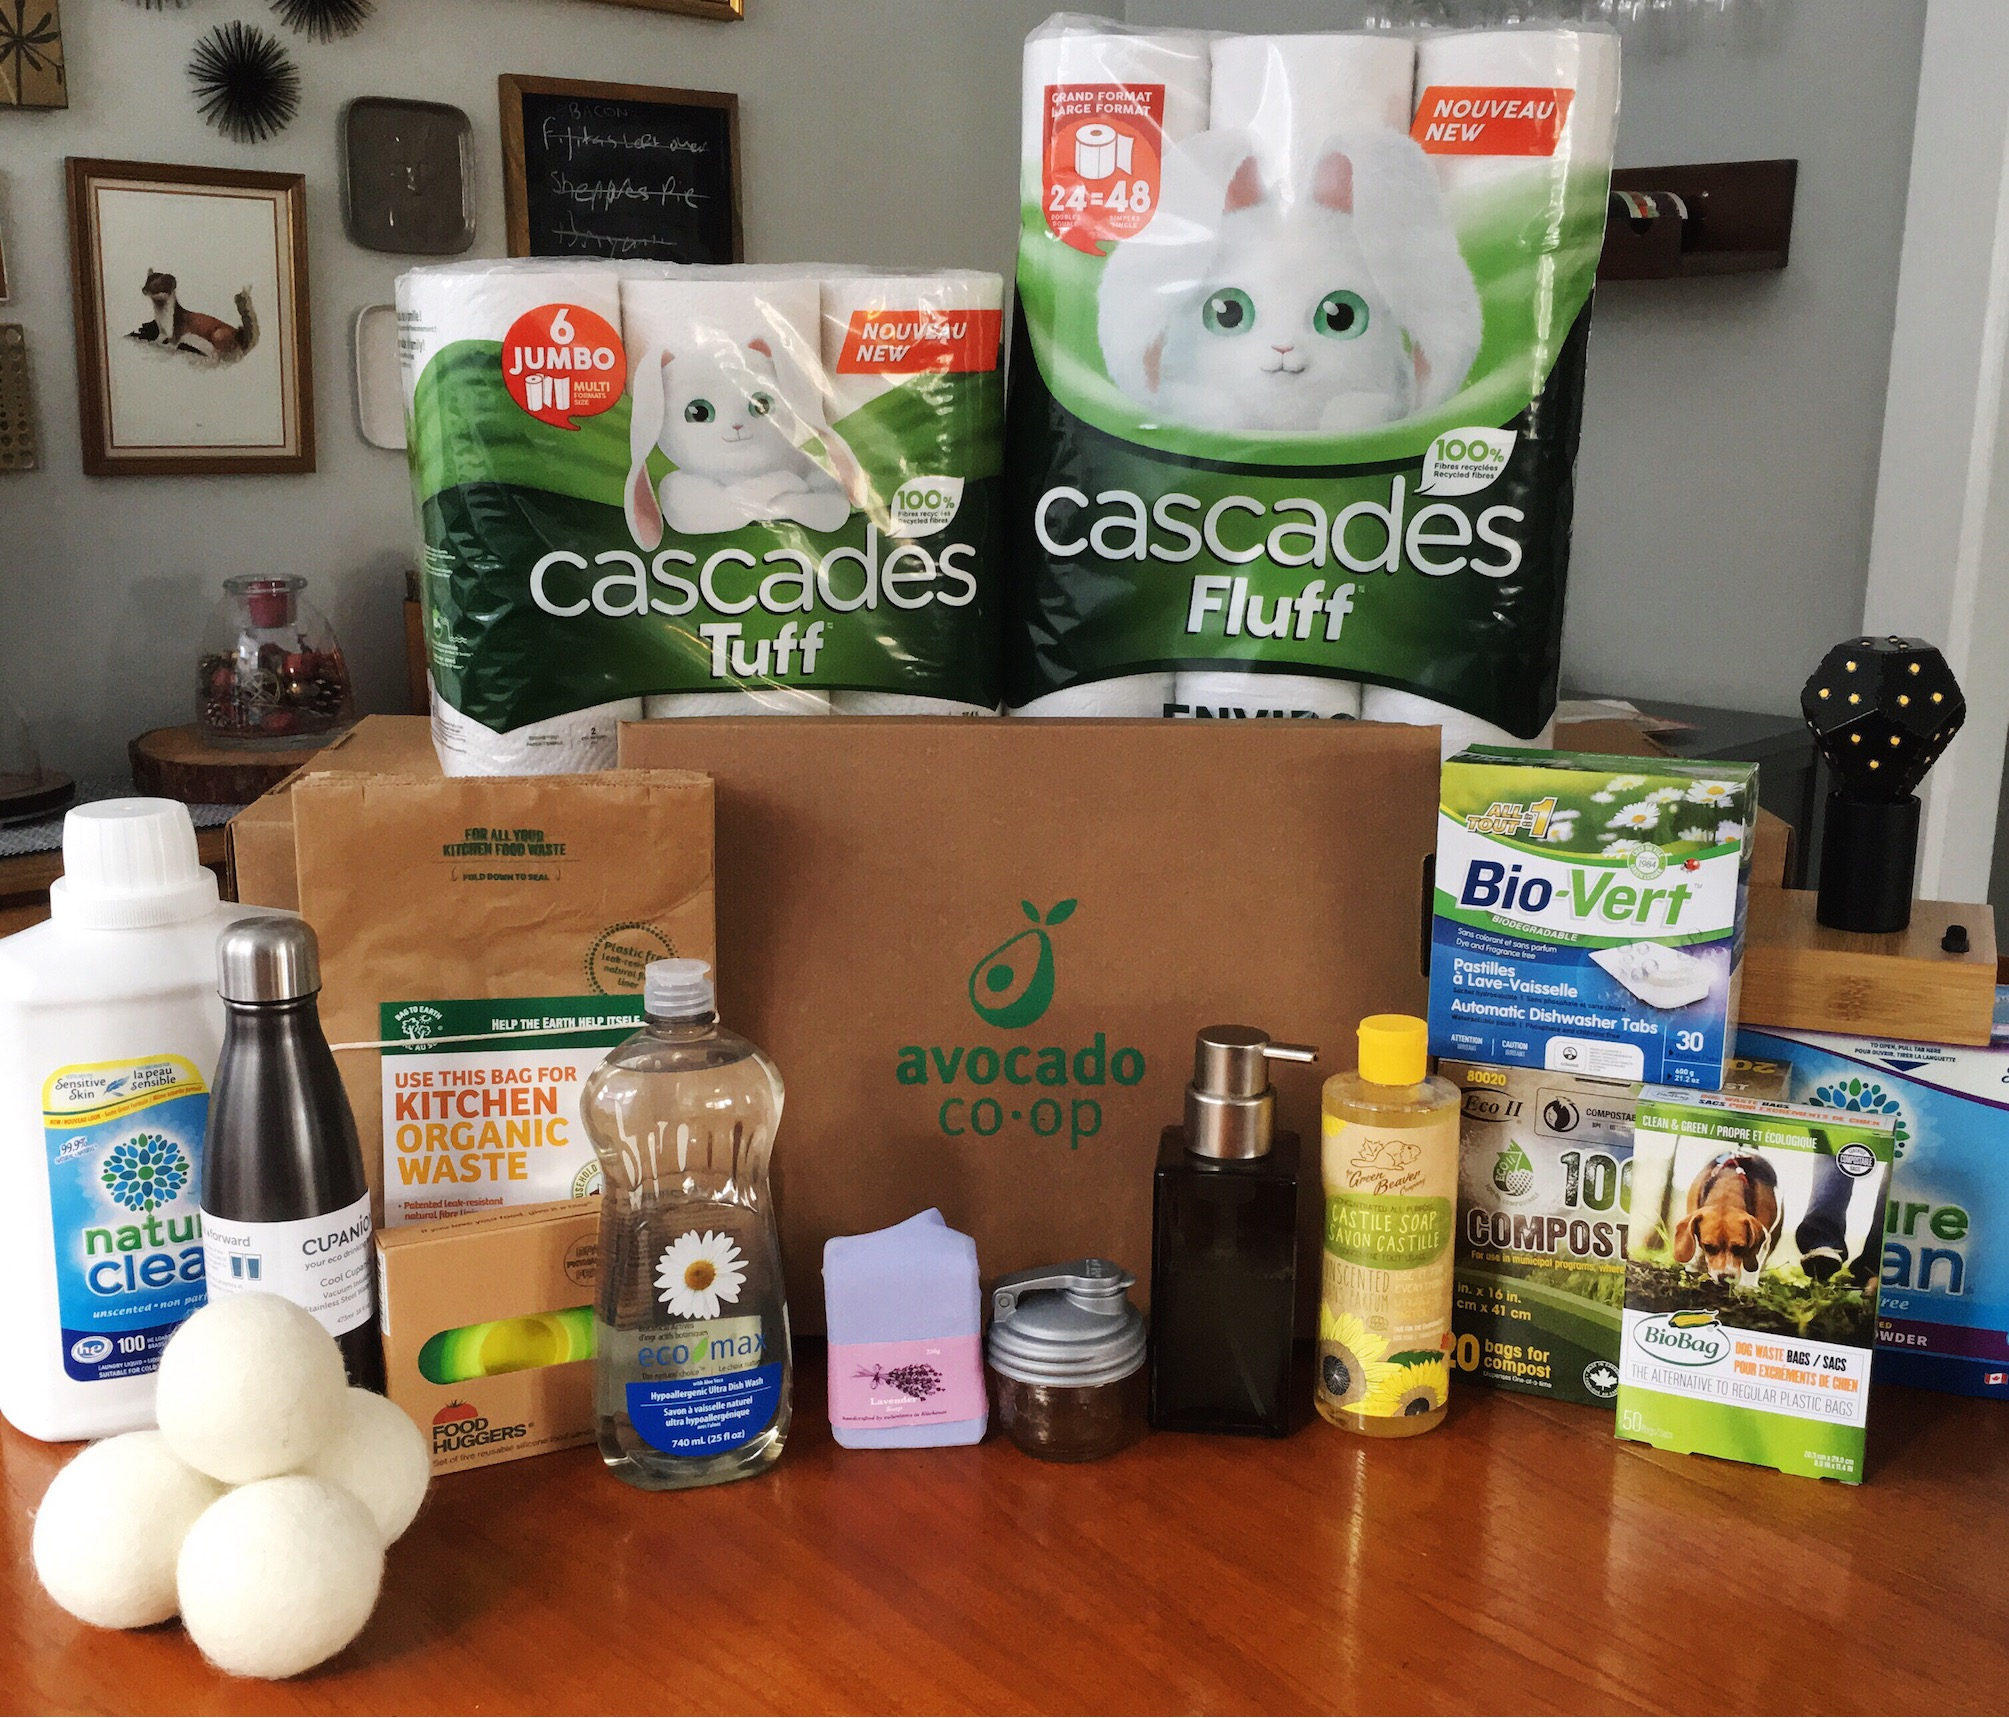 Collection of current Avocado products